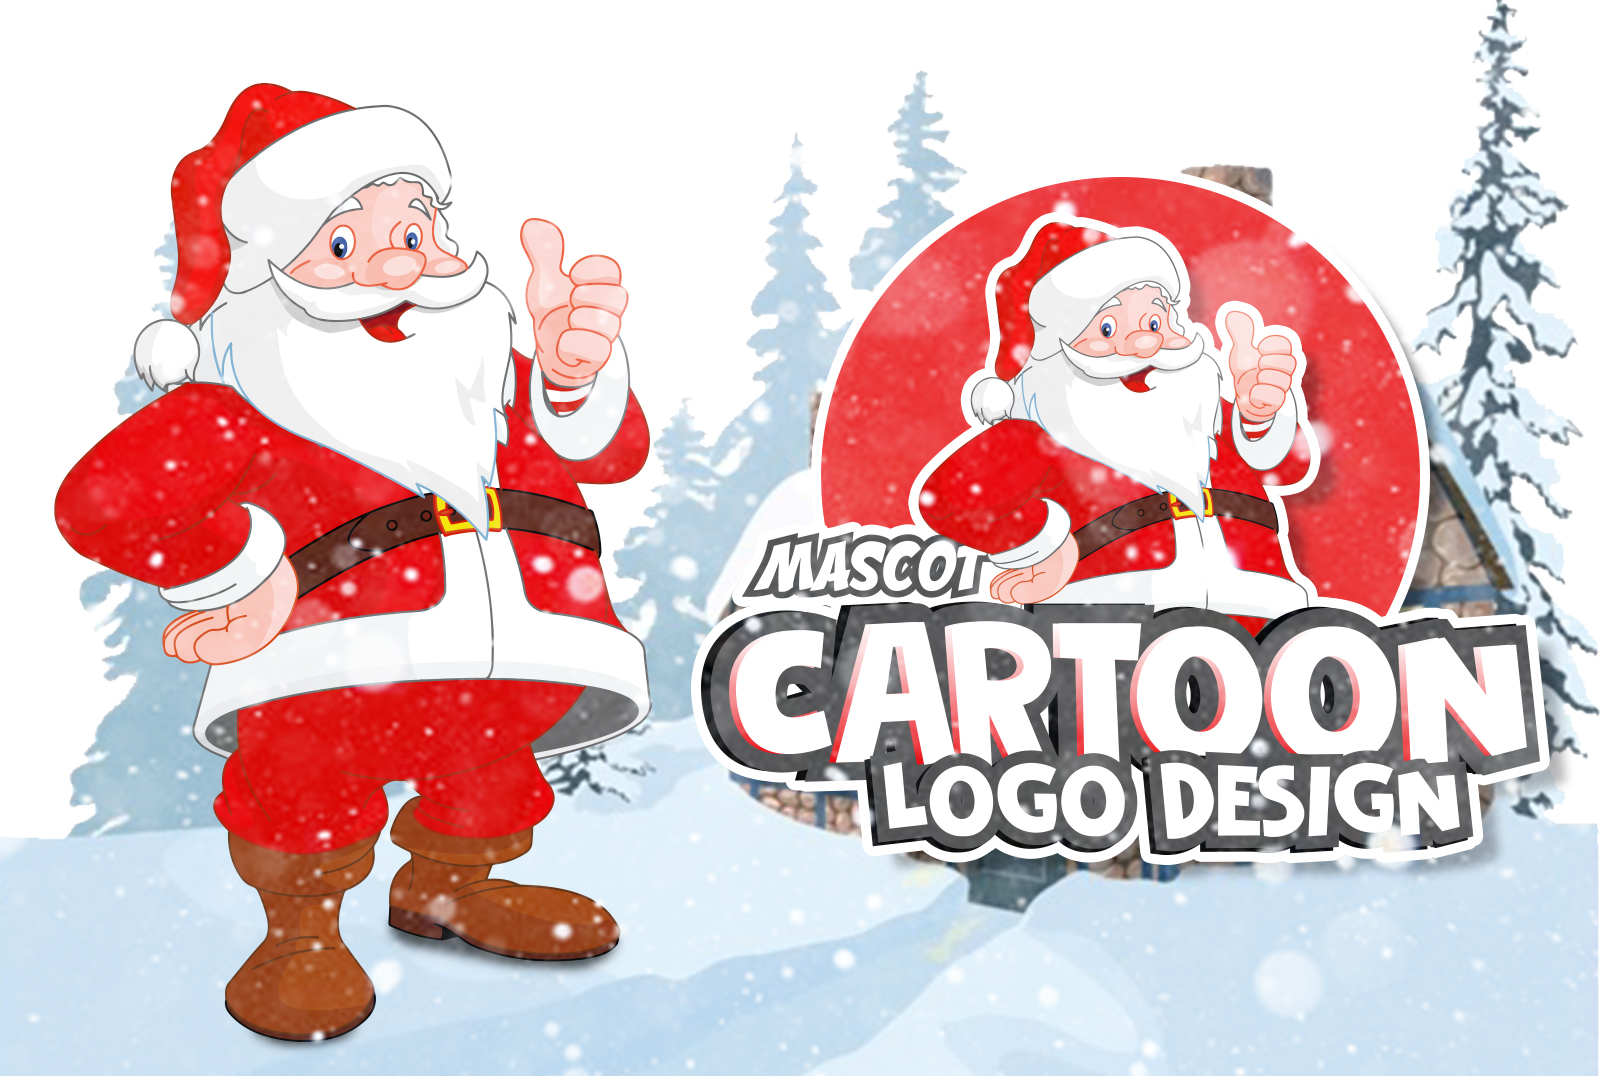 I will draw cute cartoon character and mascot logo design